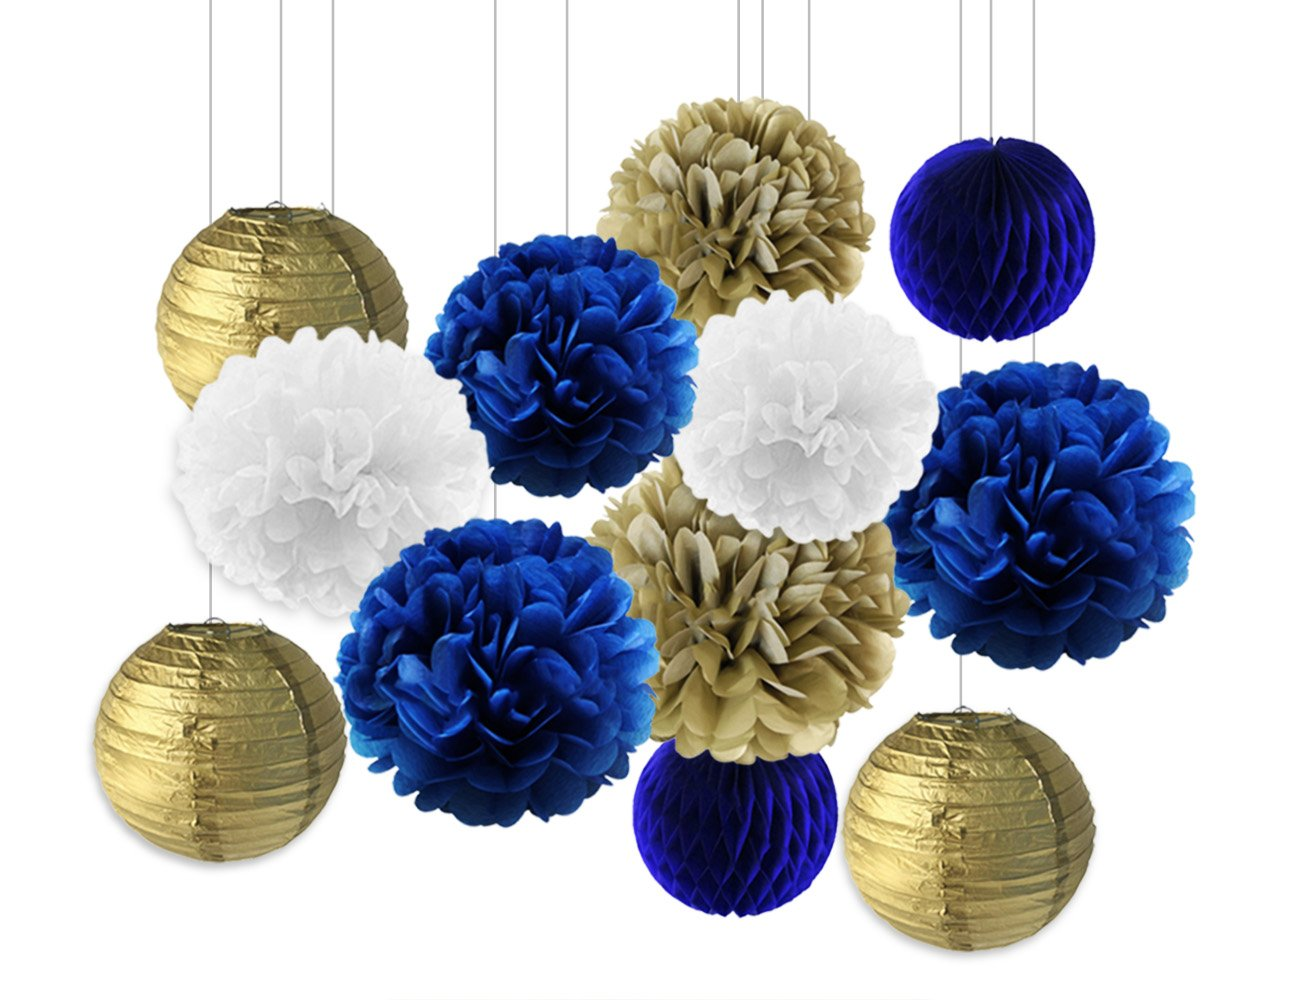 LUCK COLLECTION Navy Blue Birthday/Party Decorations for Adults Men with Tissue Paper Pom Poms Paper Lantern Paper Honeycomb Star Streamers/Baby Shower Decor Bridal Shower Decor KREATWOW